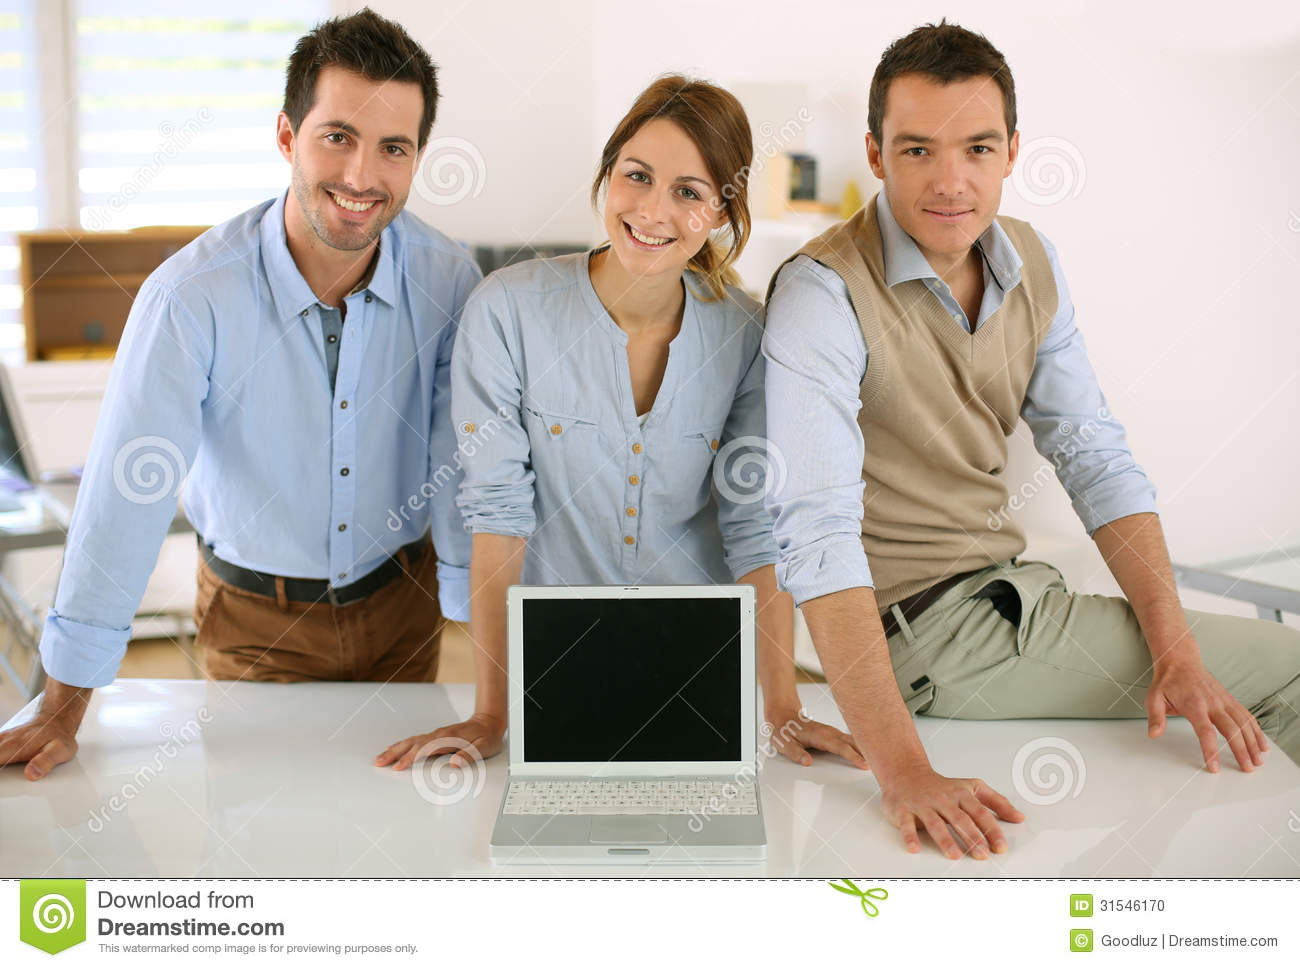 Business team showing text or results on laptop screen